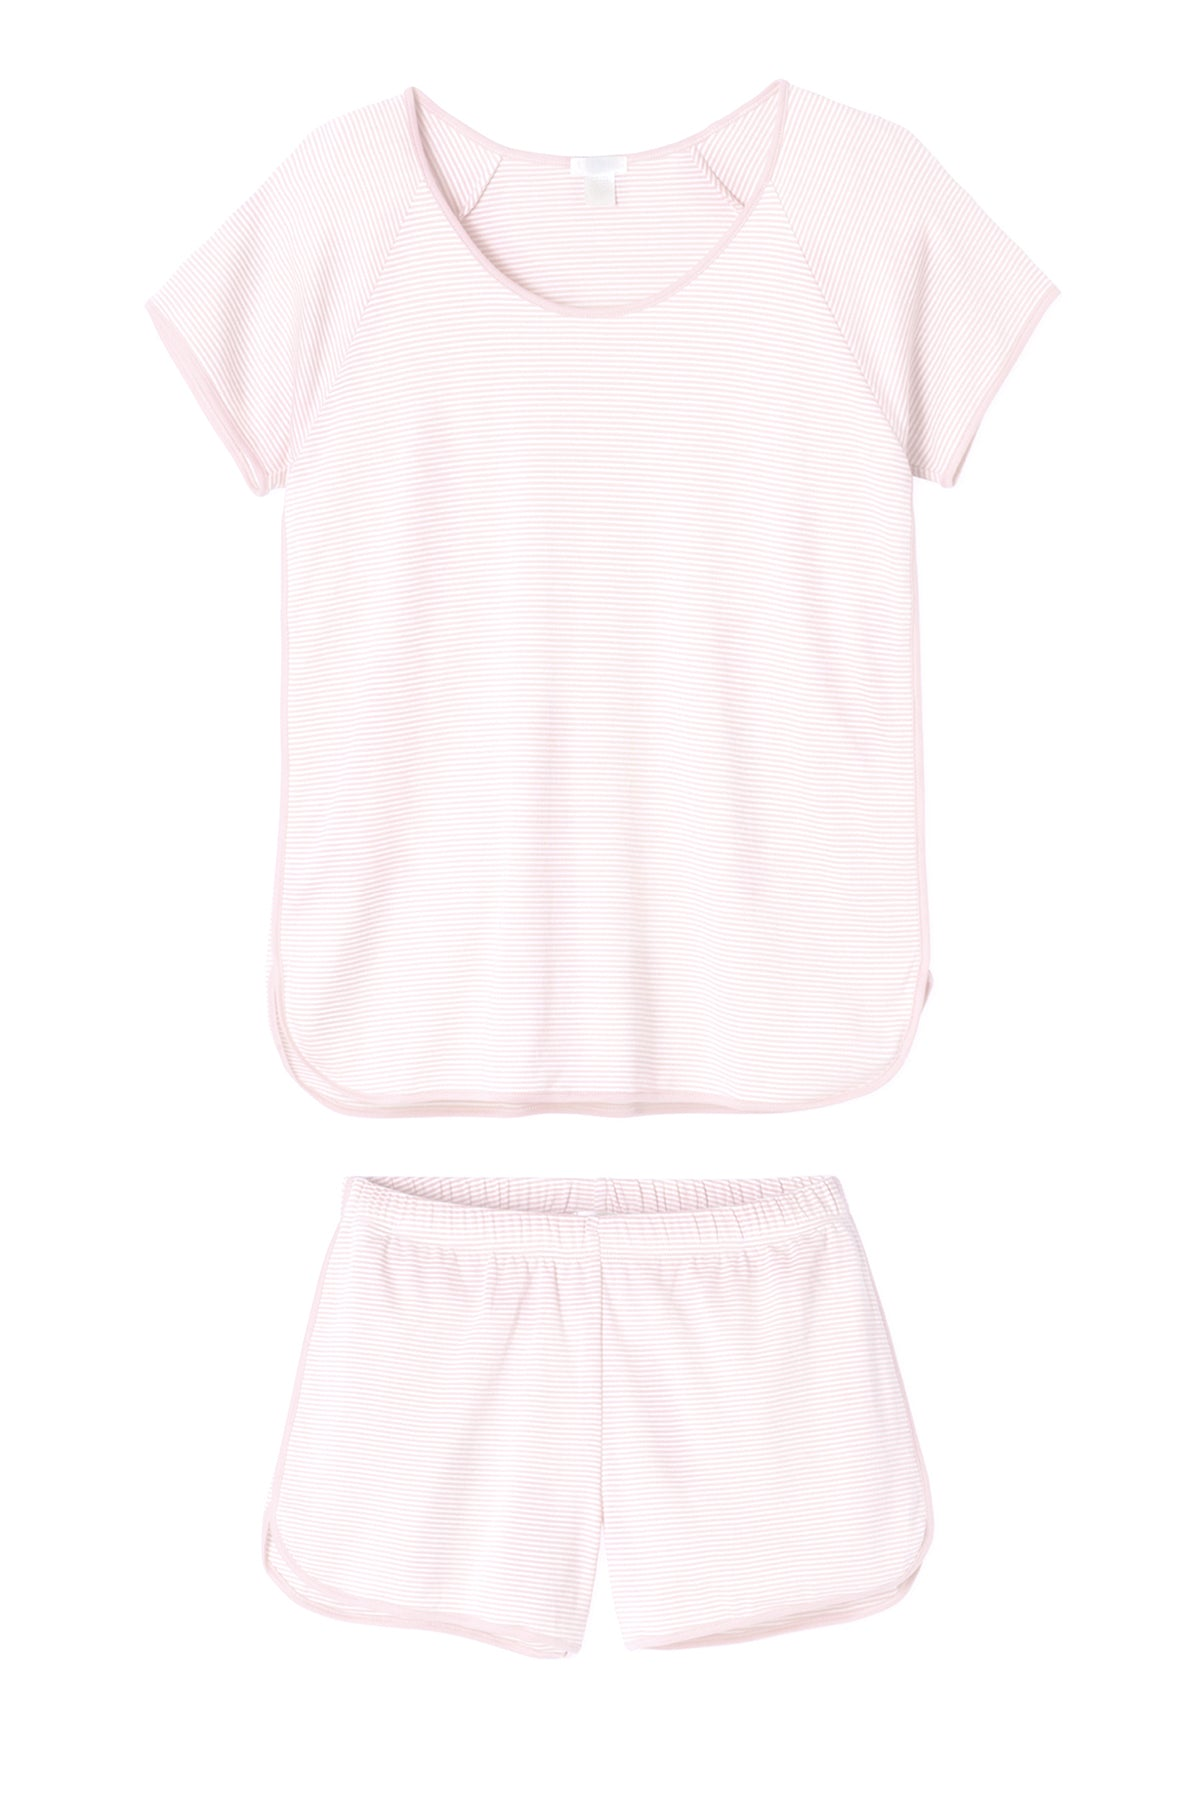 Pima Shorts Set in Pale Pink